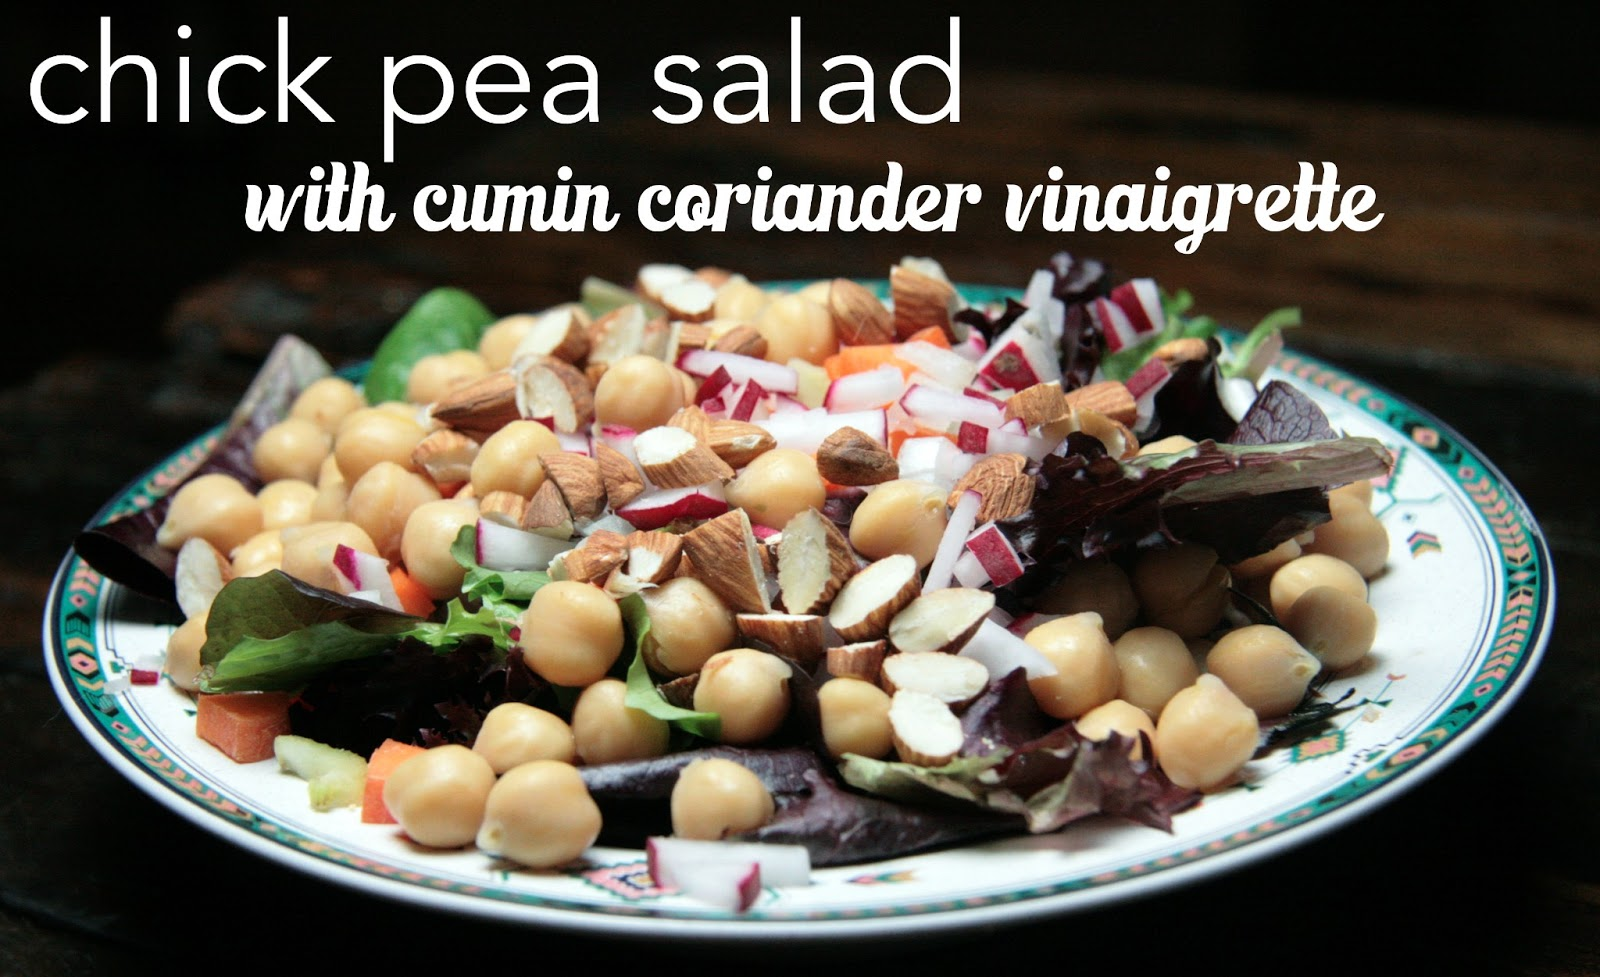 Local Food Rocks: Chick pea salad with cumin coriander vinaigrette